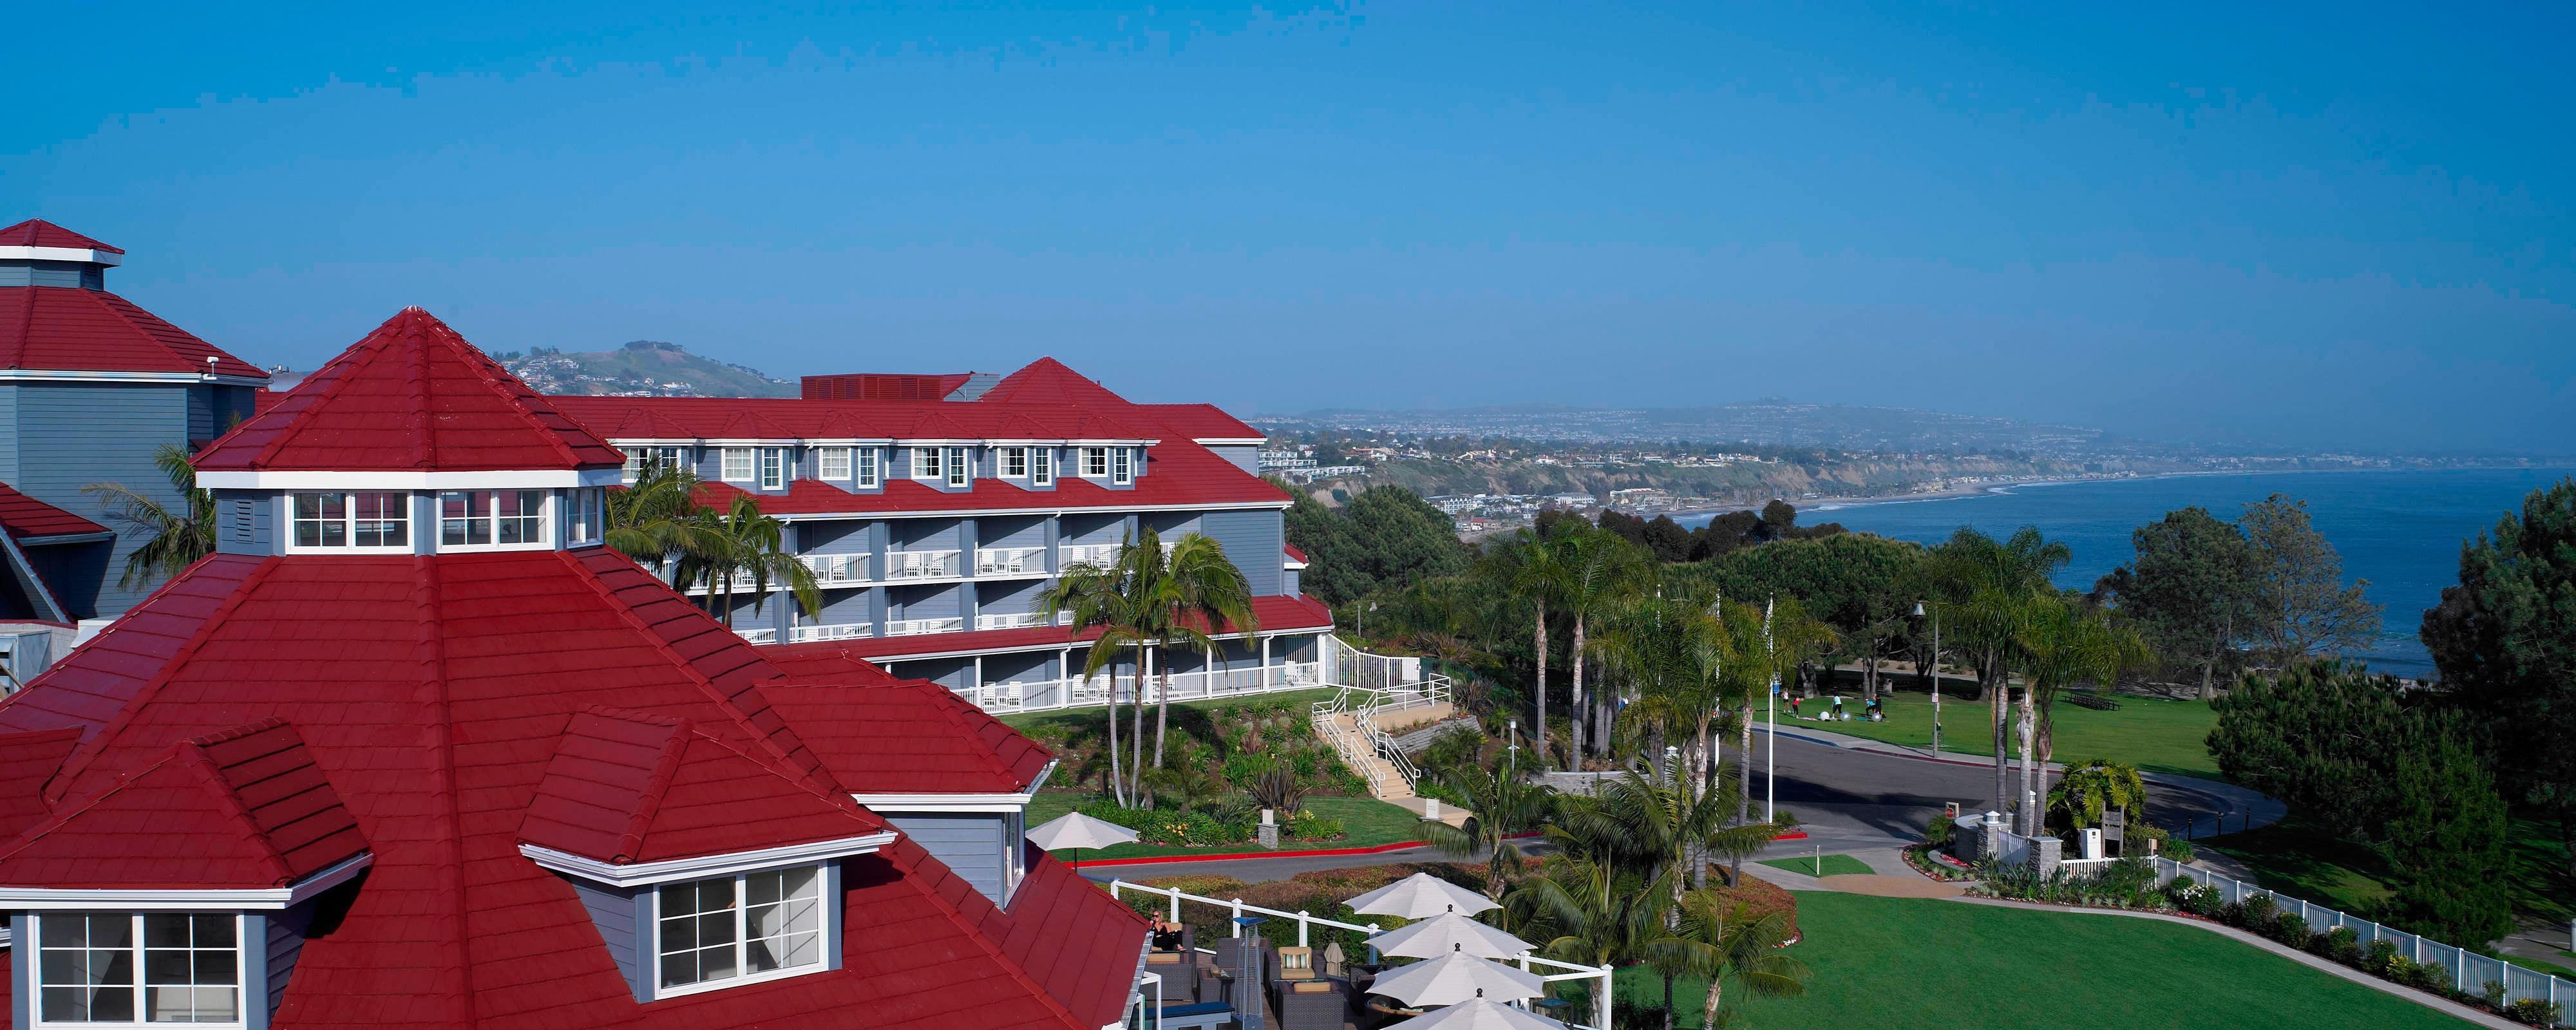 Dana Point California Hotel Map | Marriott Resort & Spa